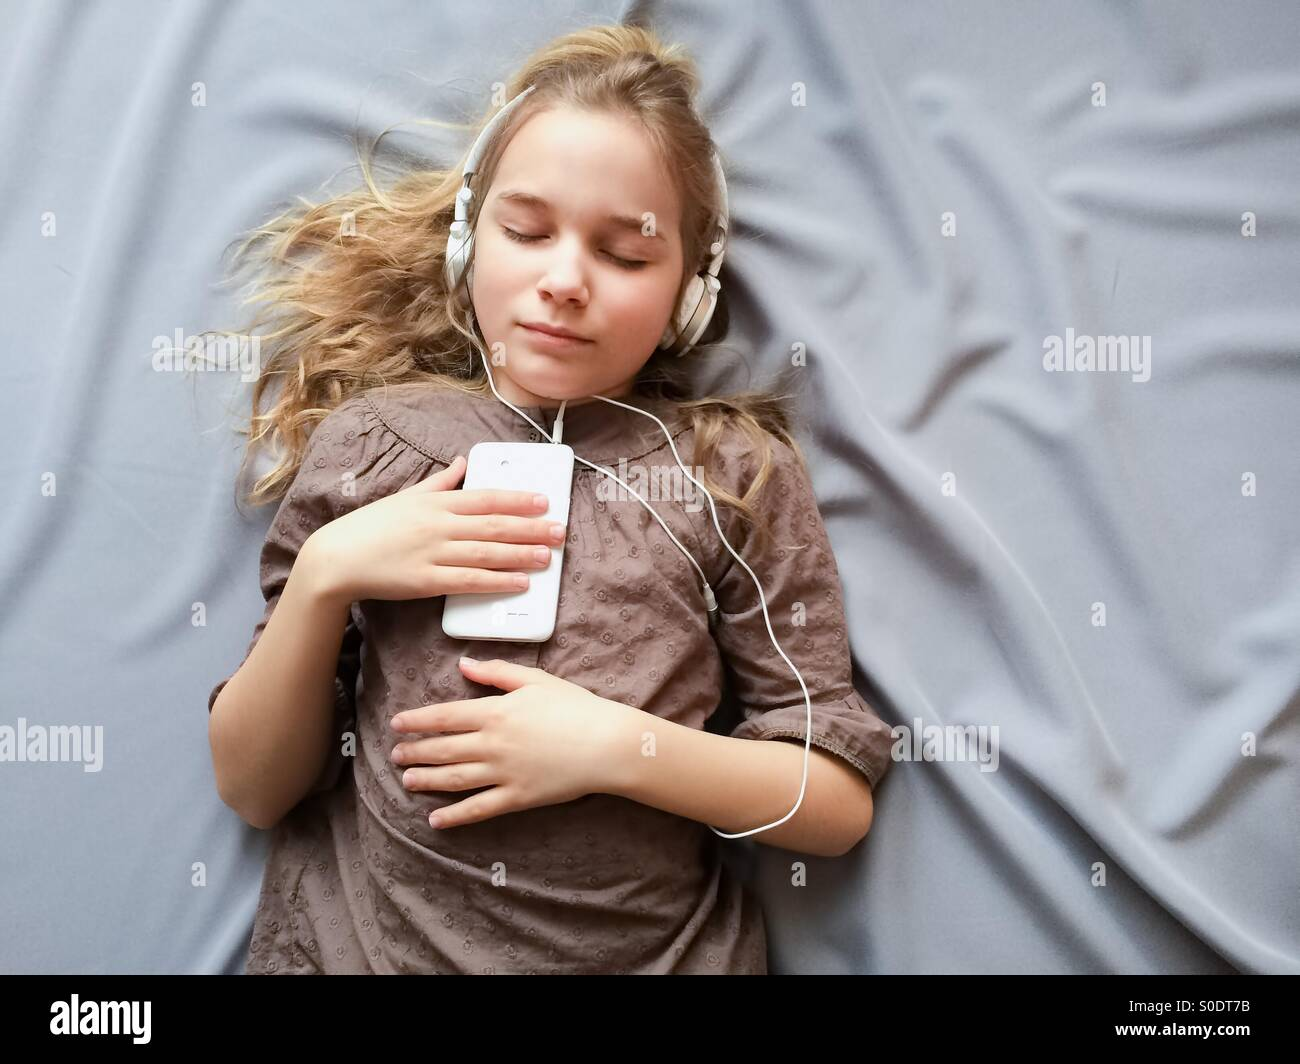 It sounds like a dream. Young girl lying on the bed and dreaming about something with closed eyes. - Stock Image